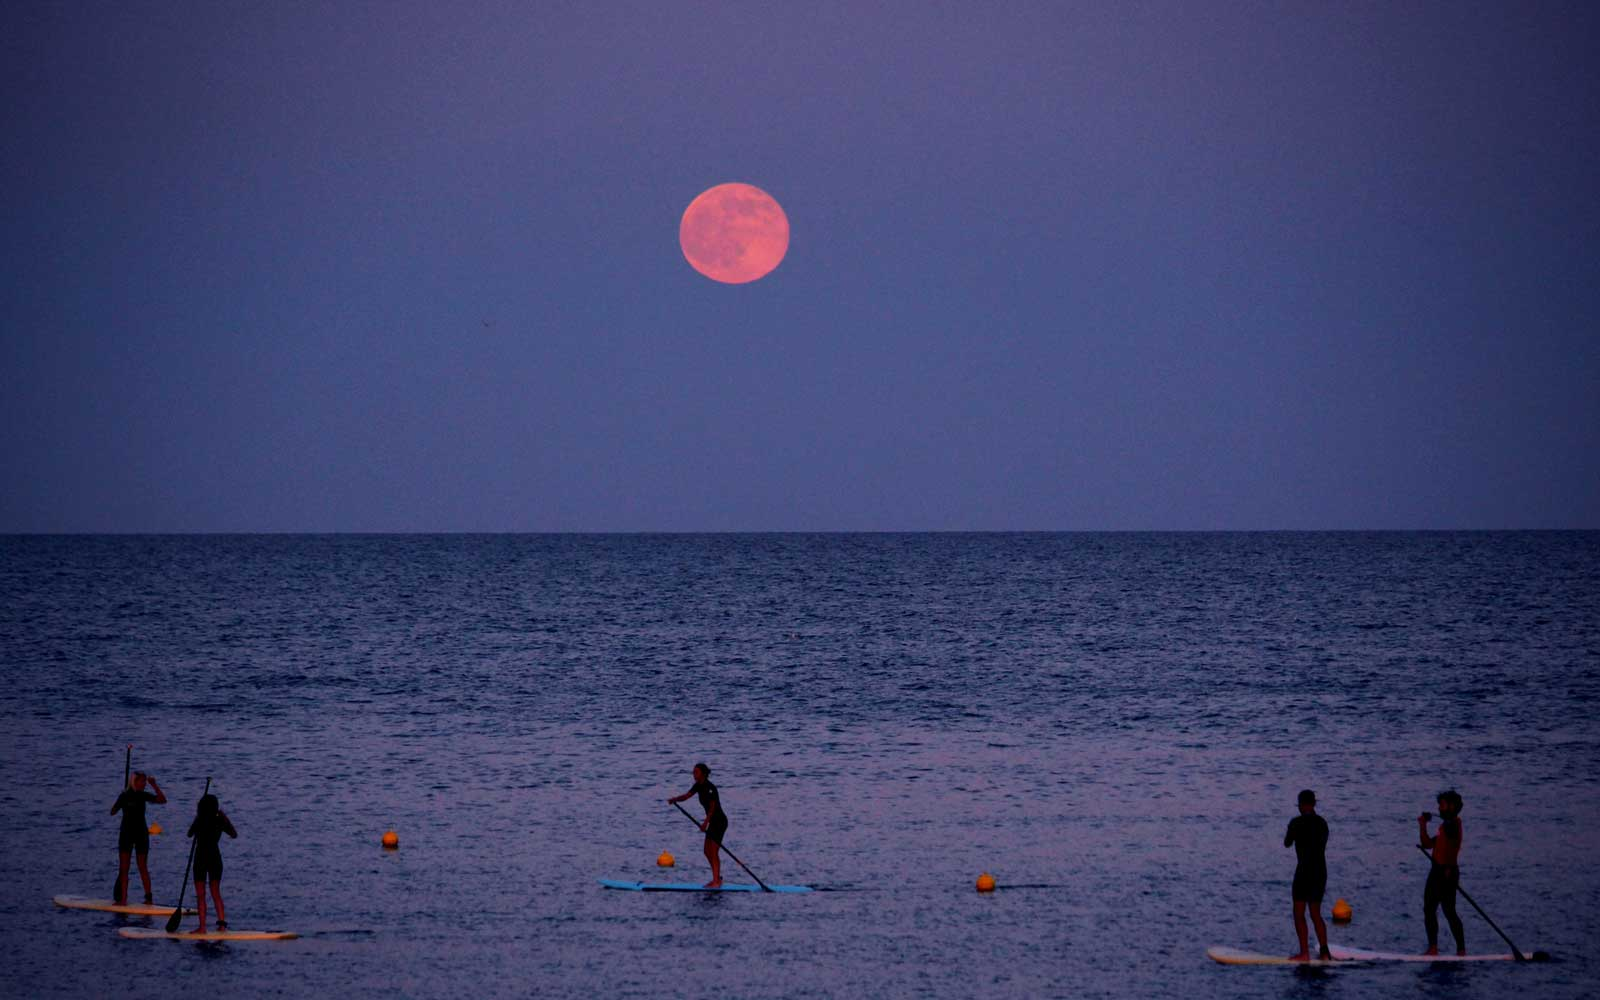 Strawberry Moon 2018: How to See the Full Strawberry Moon This June